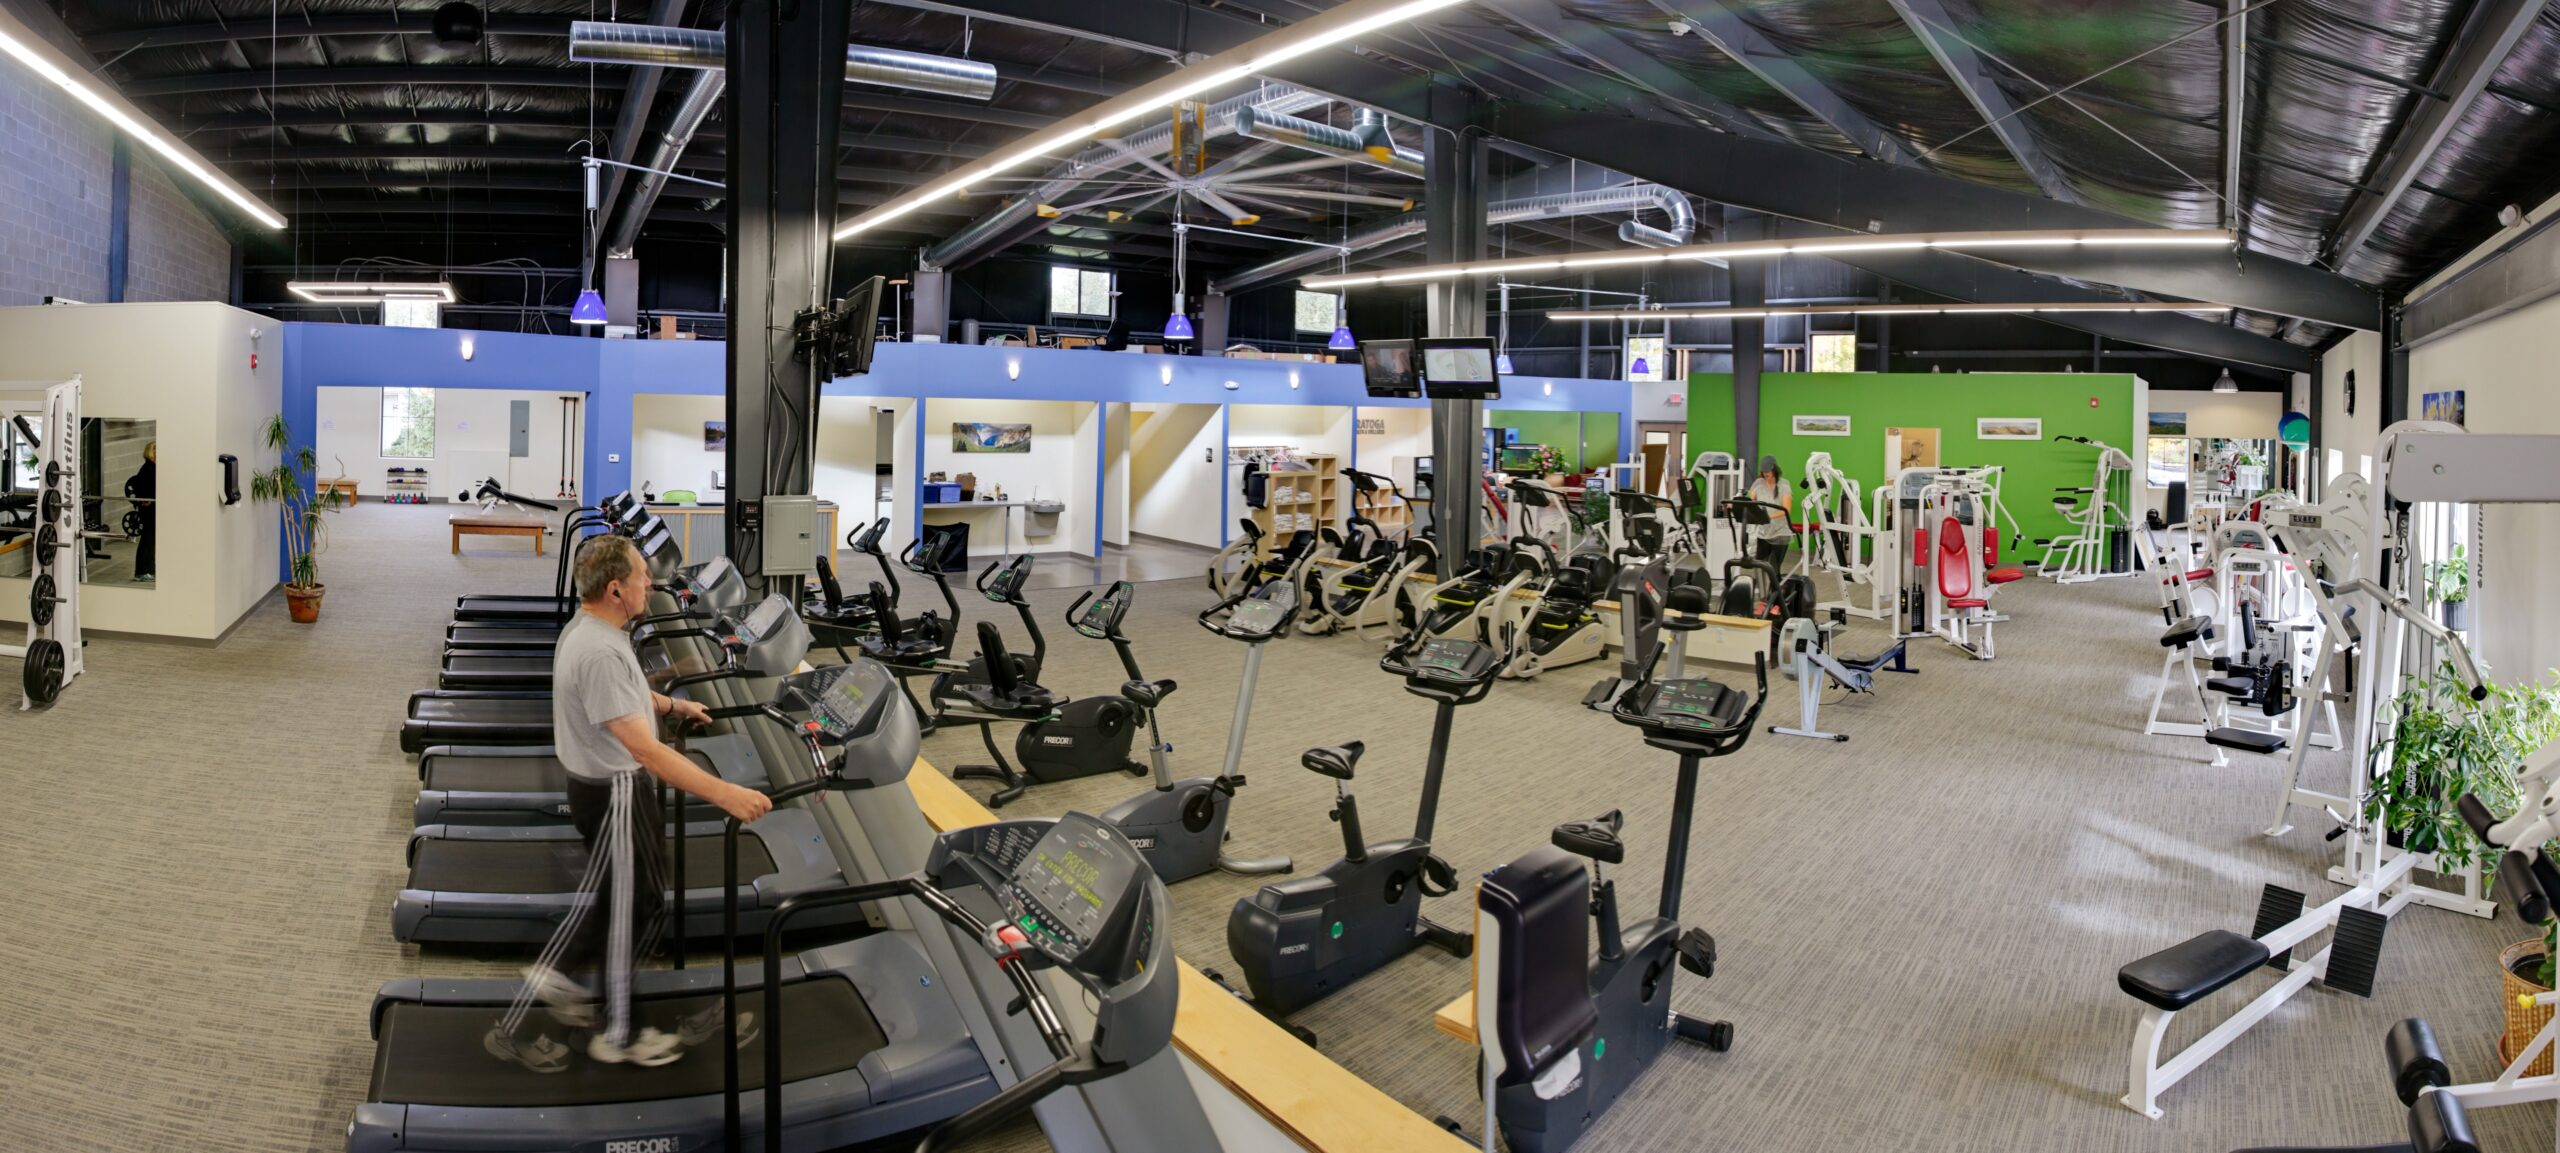 Cybex and nautilus strength training equipment along the windows with ample floor space for precor cardio - spacious facility